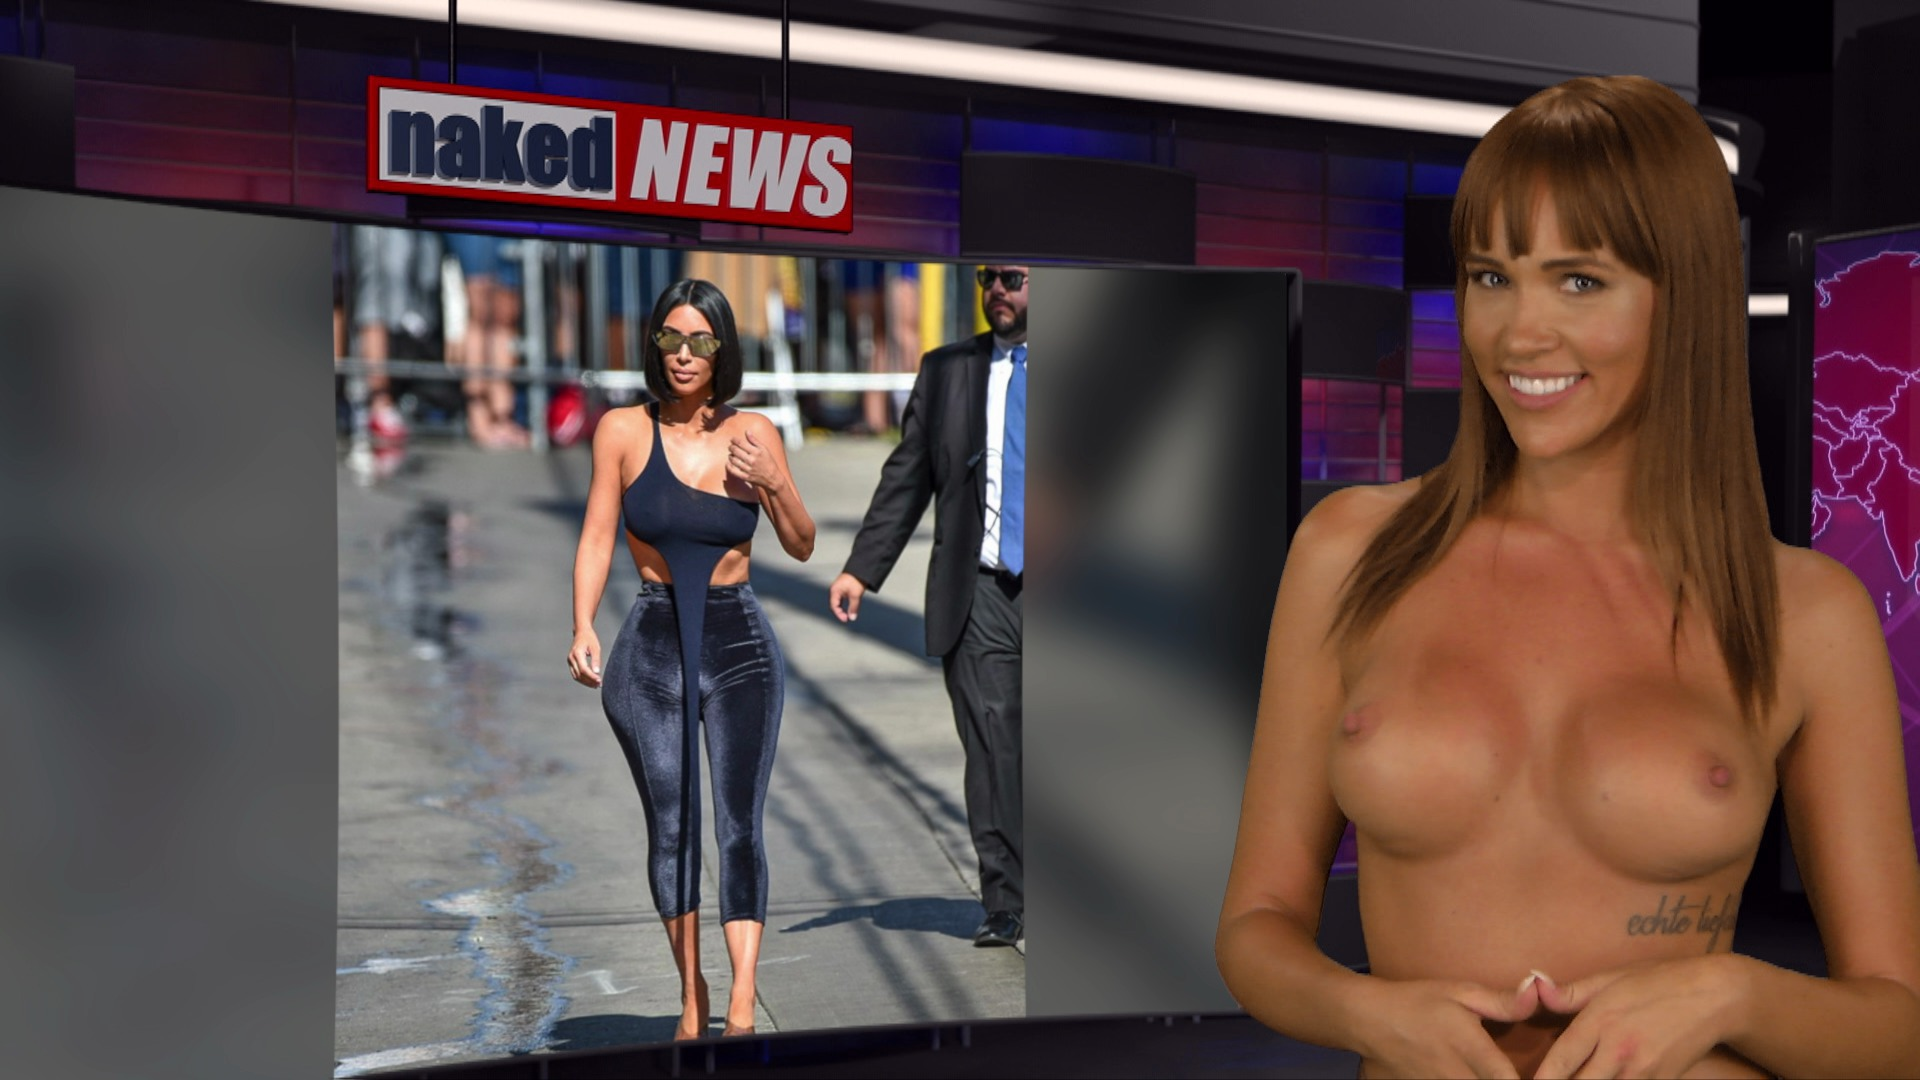 News reporter fucked live porn in most relevant